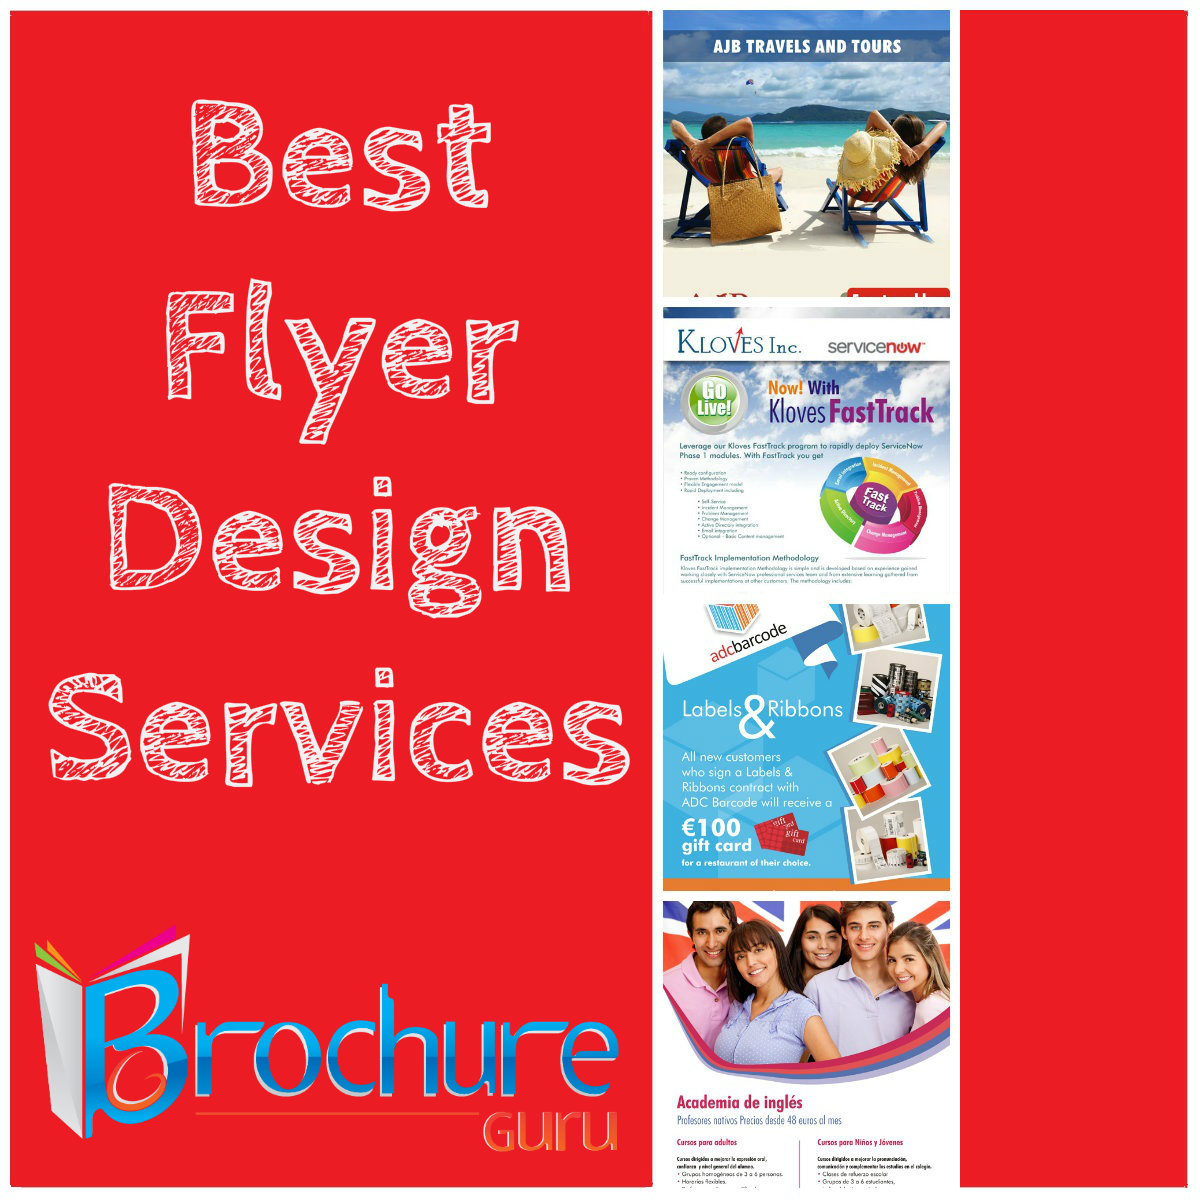 6 tips to achieve the best flyer design